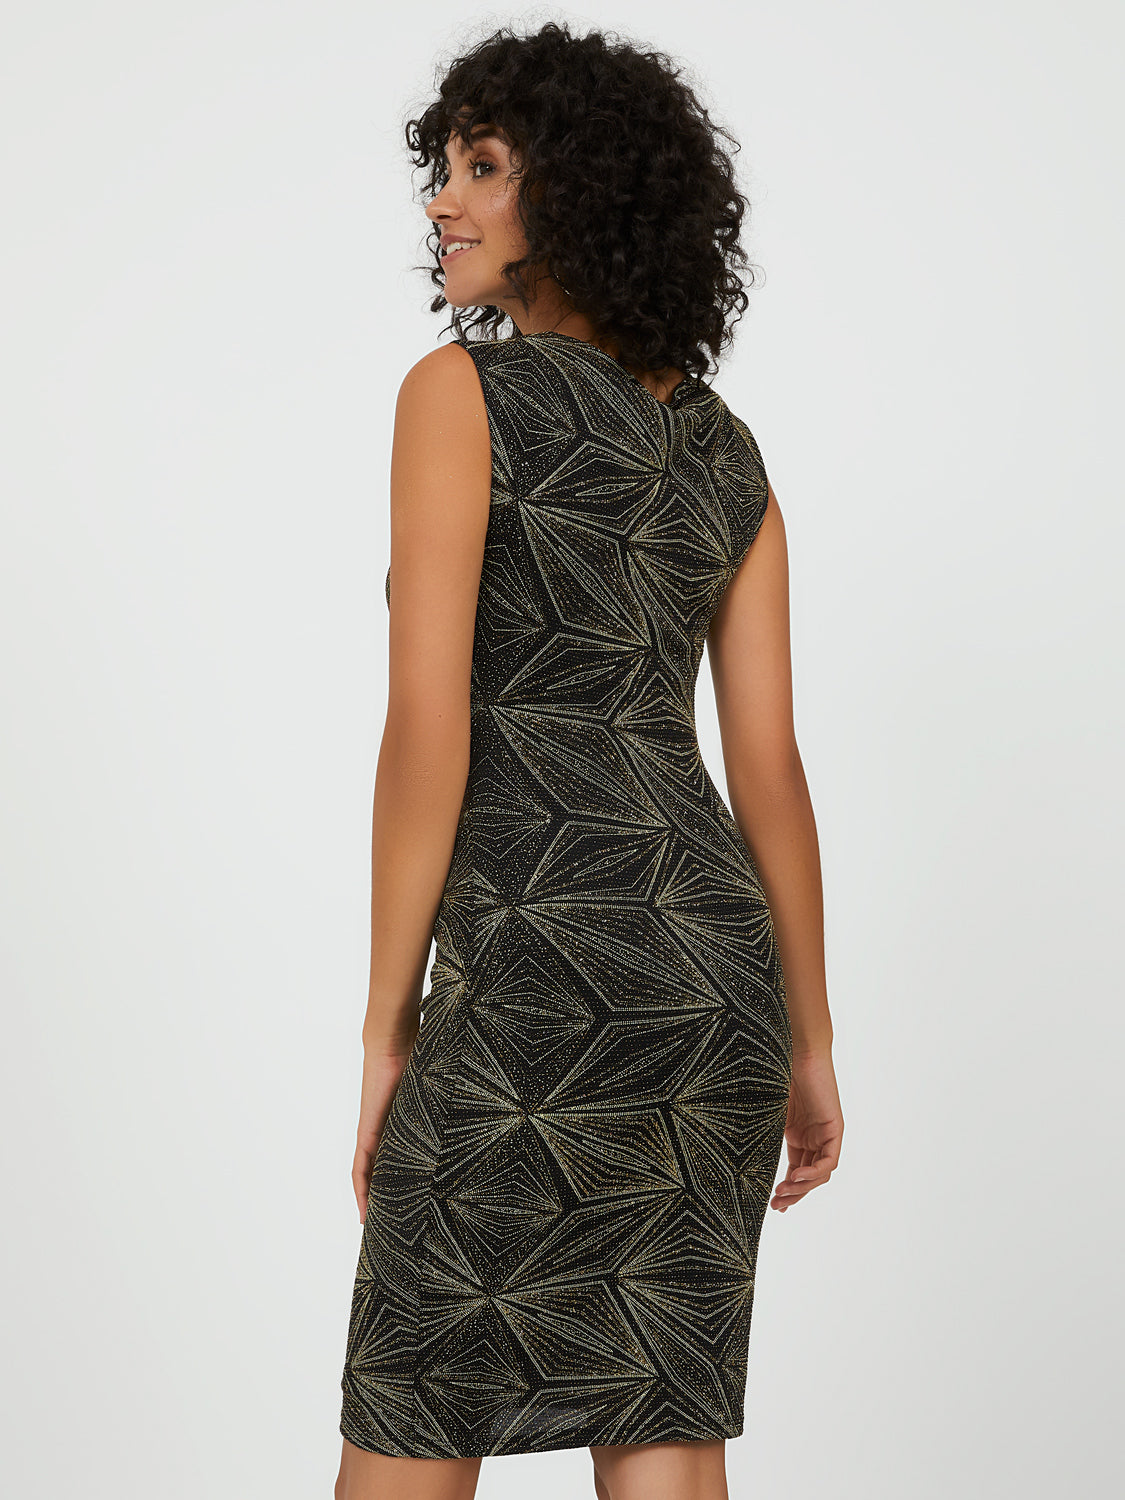 Geometric Glitter Knit Sheath Dress